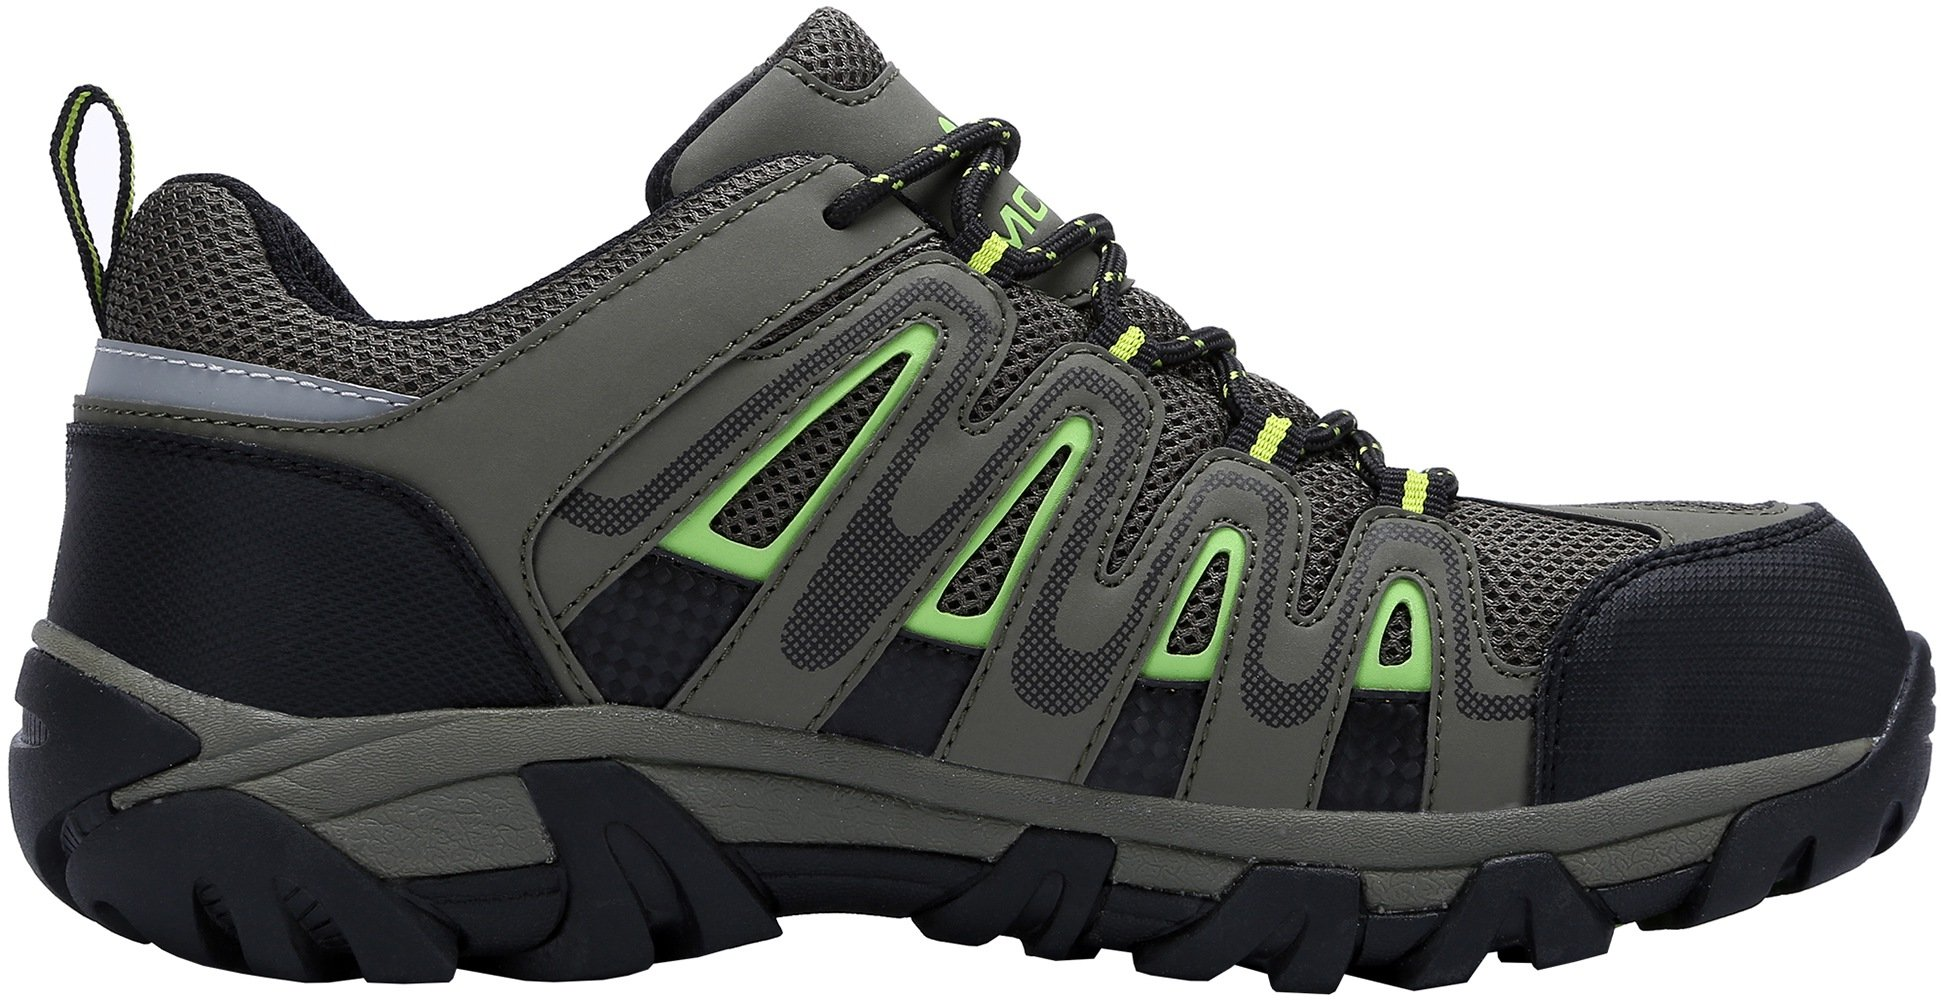 Details About Modyf Mens Work Safety Shoes Steel Toe Puncture Proof Footwear Industrial And 11 Sepatu Motor Cross Construction Army Green